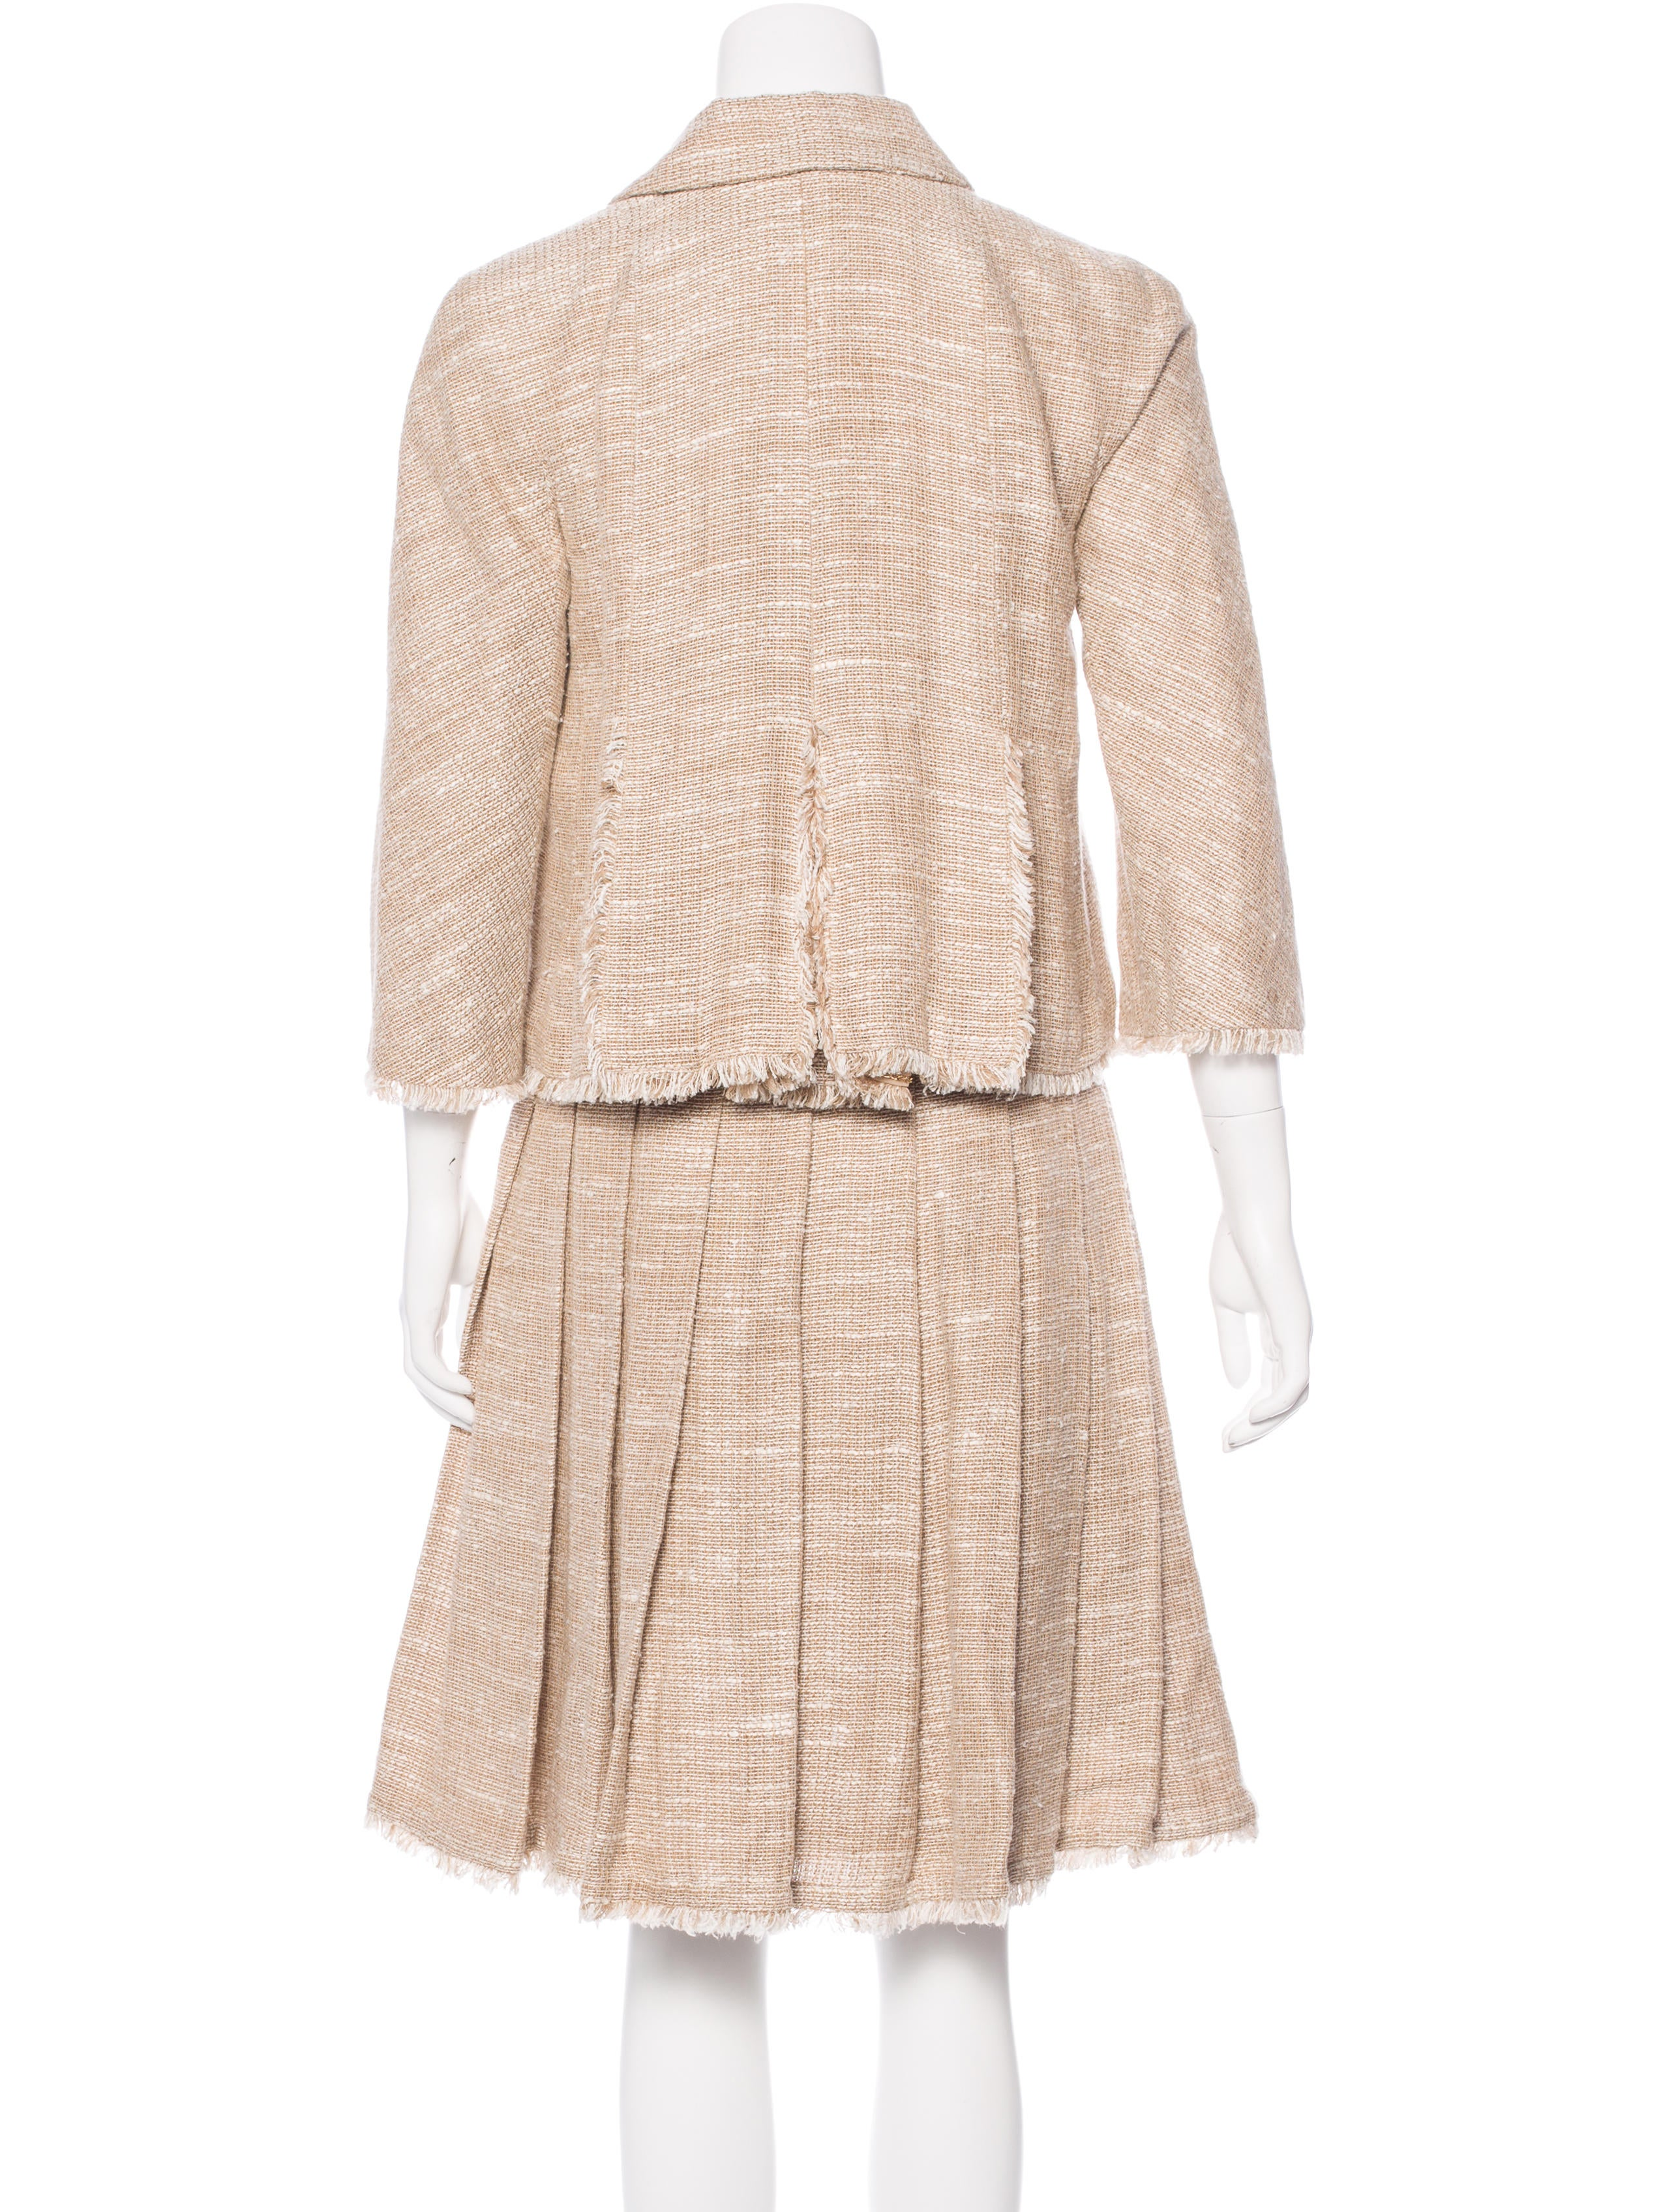 chanel tweed pleated skirt suit clothing cha172477